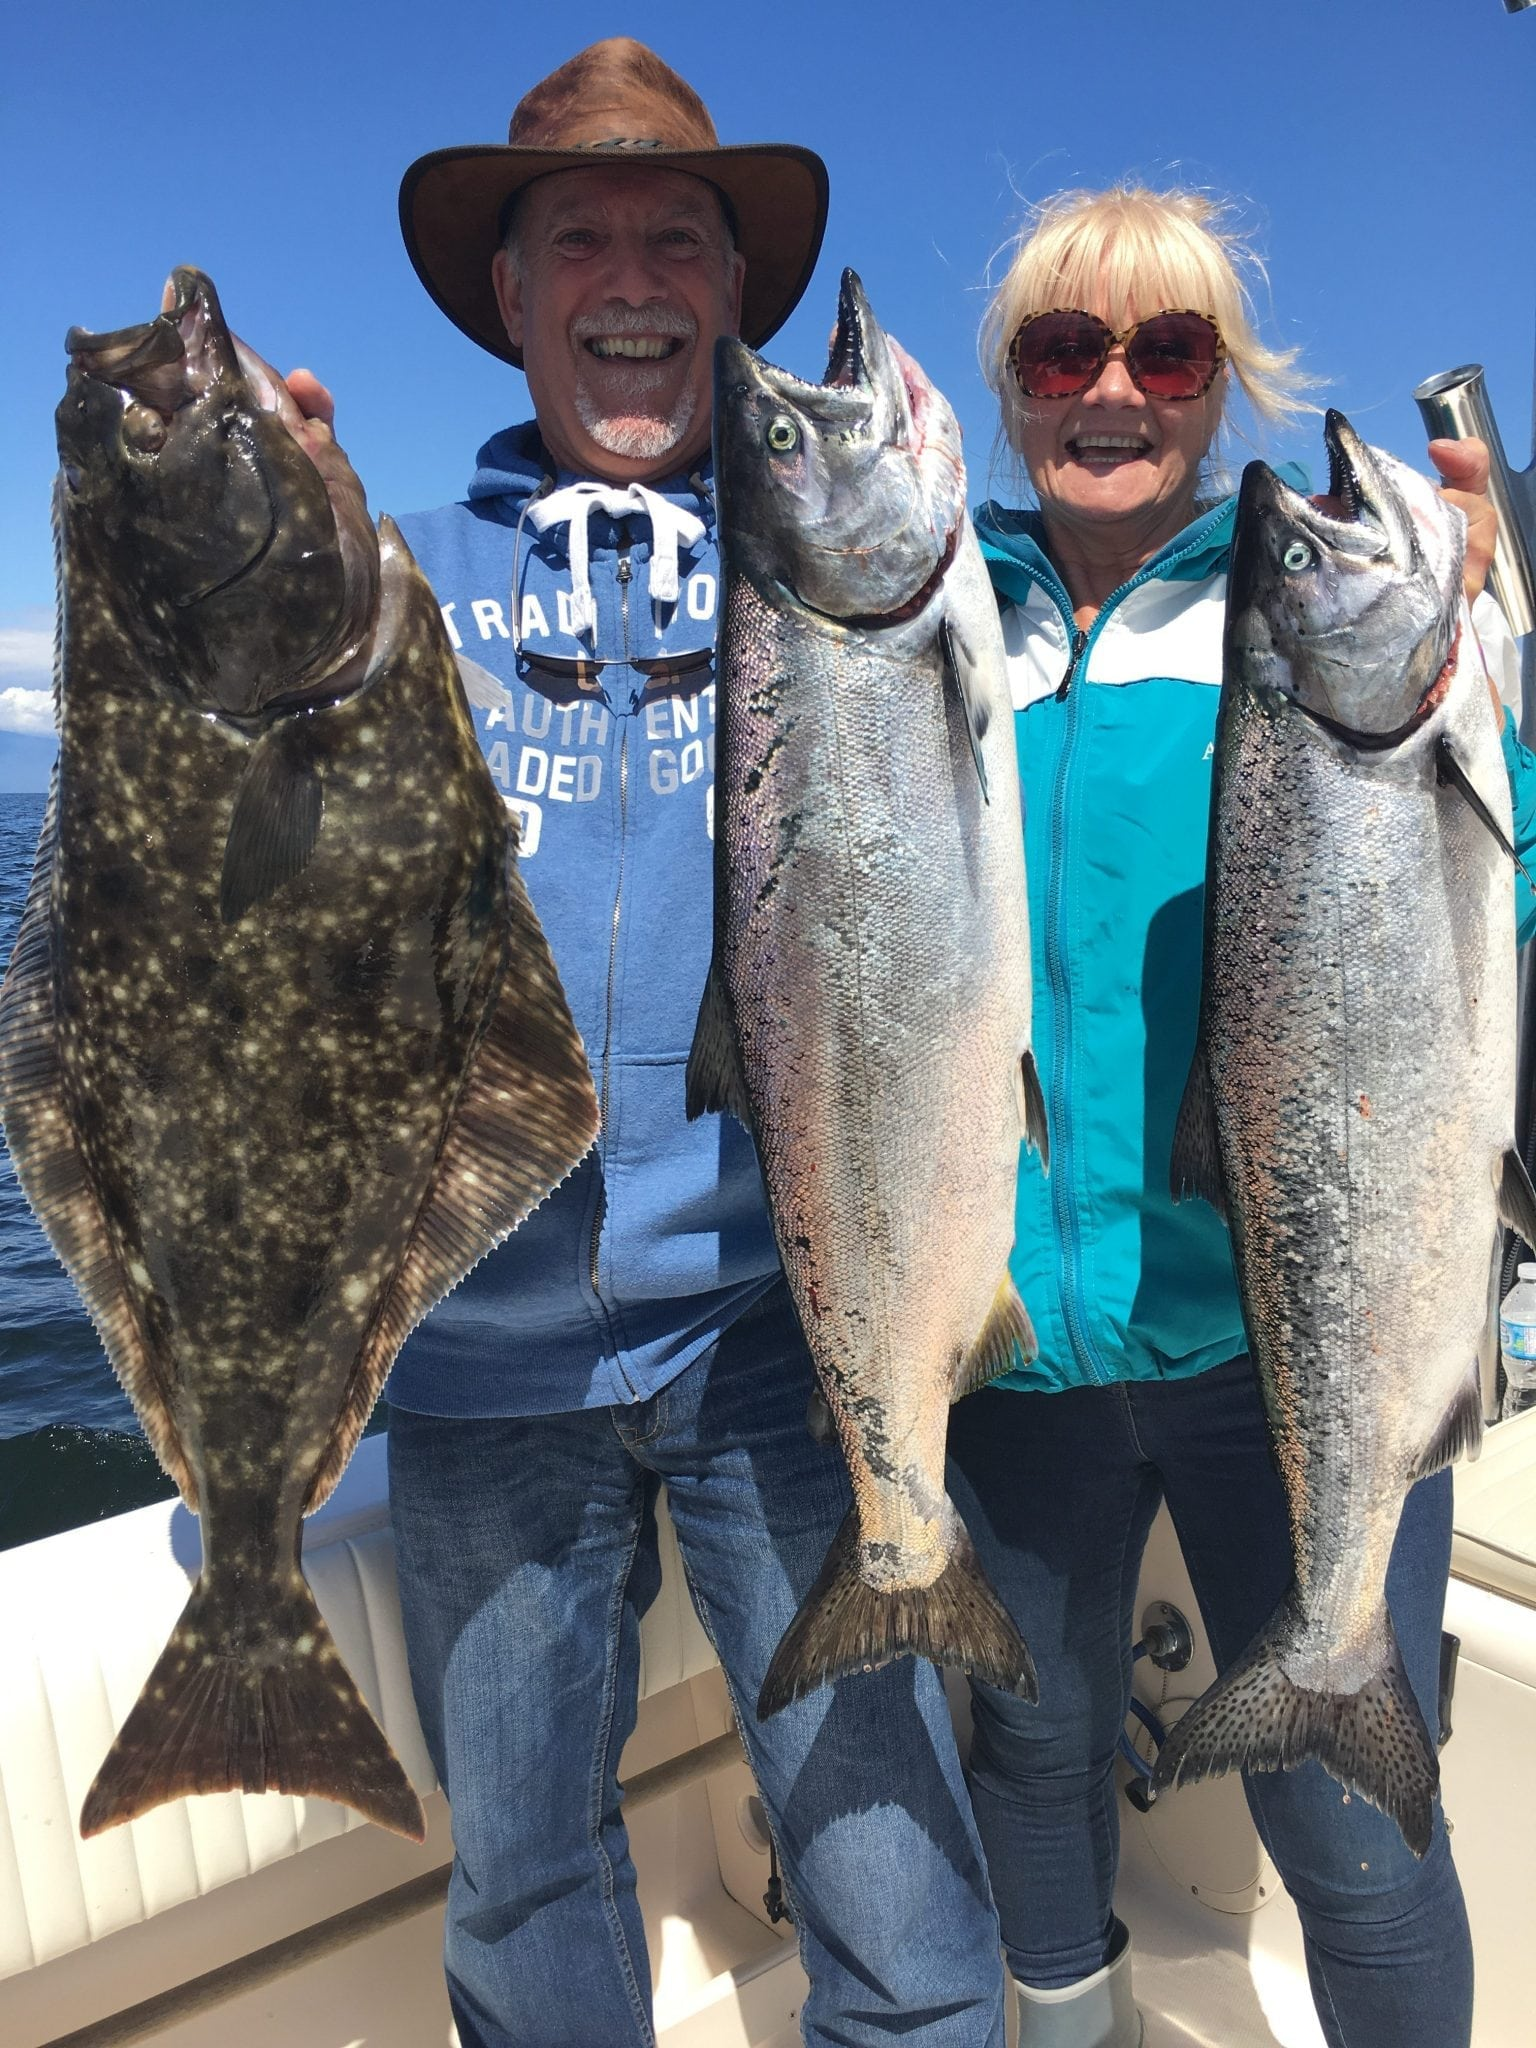 Two salmon caught and a surprise halibut, what a mix